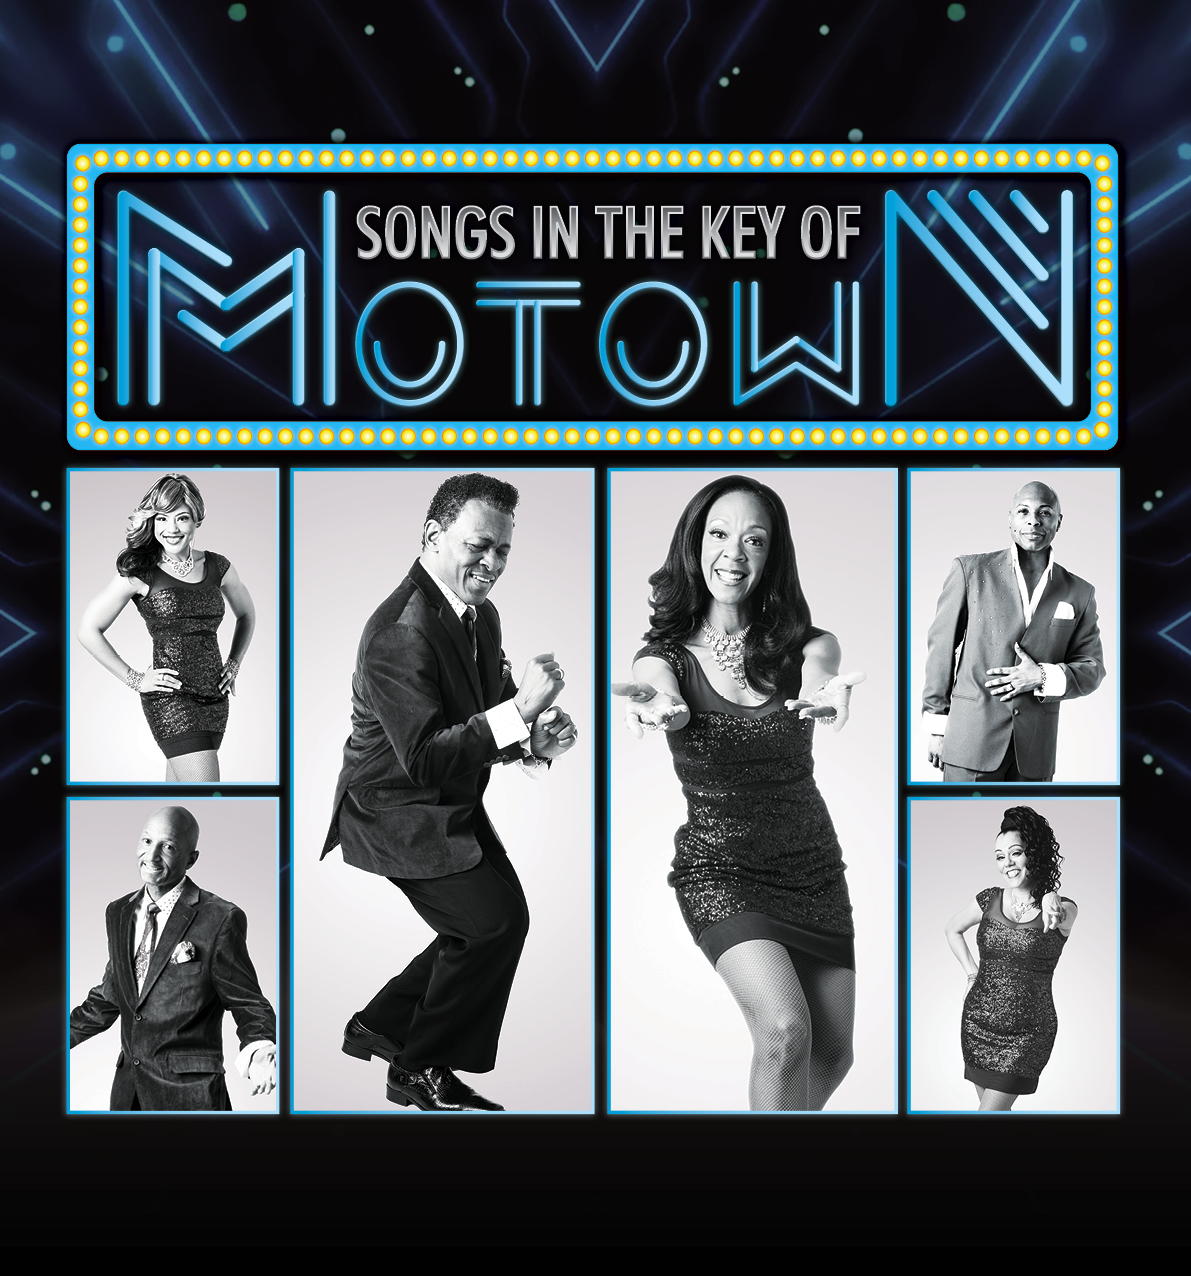 ABSTRACT_Songs in the Key of Motown Image.jpg